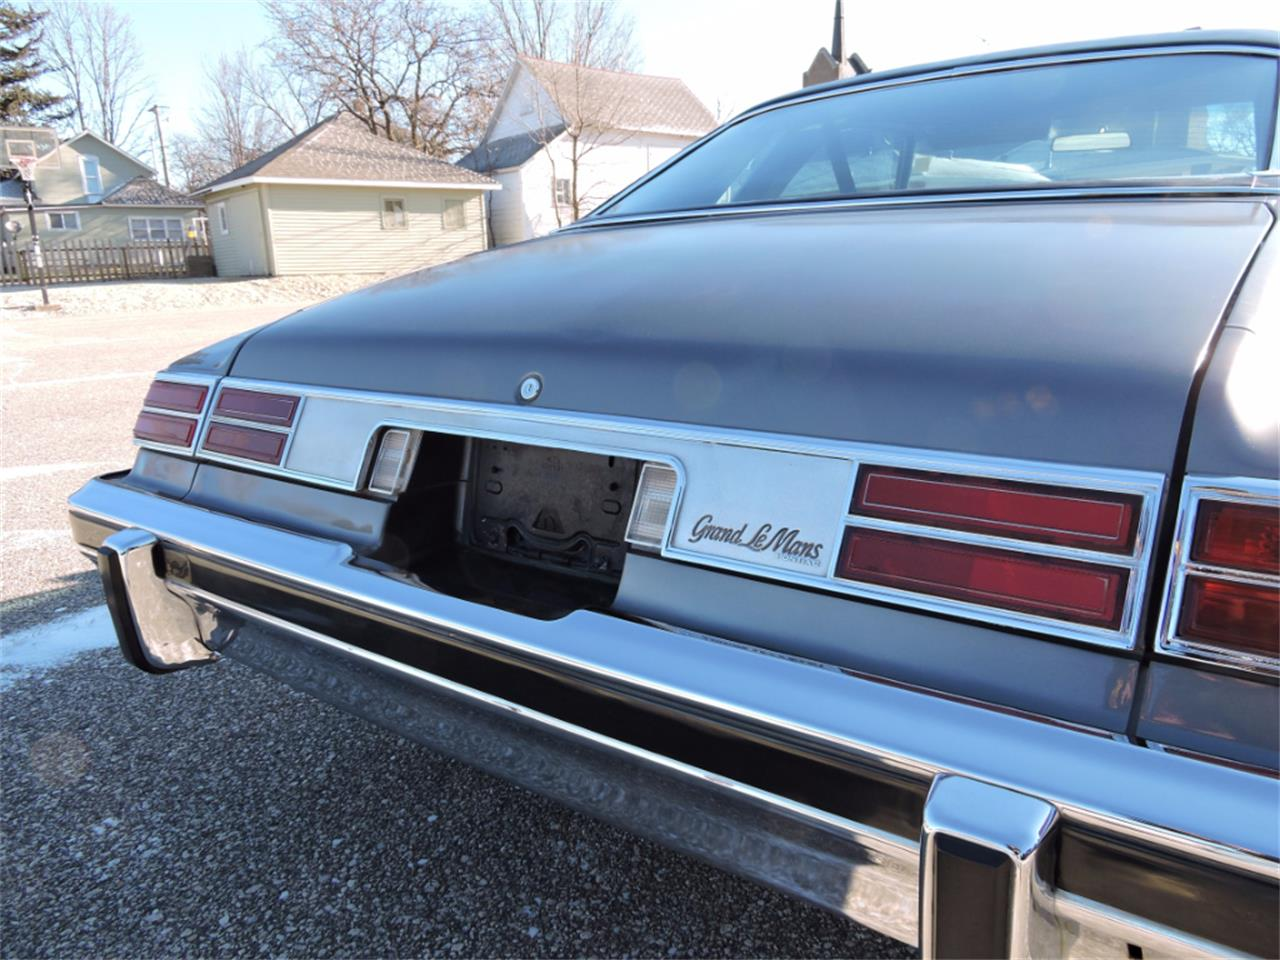 1977 Pontiac Grand LeMans for sale in Greene, IA – photo 54